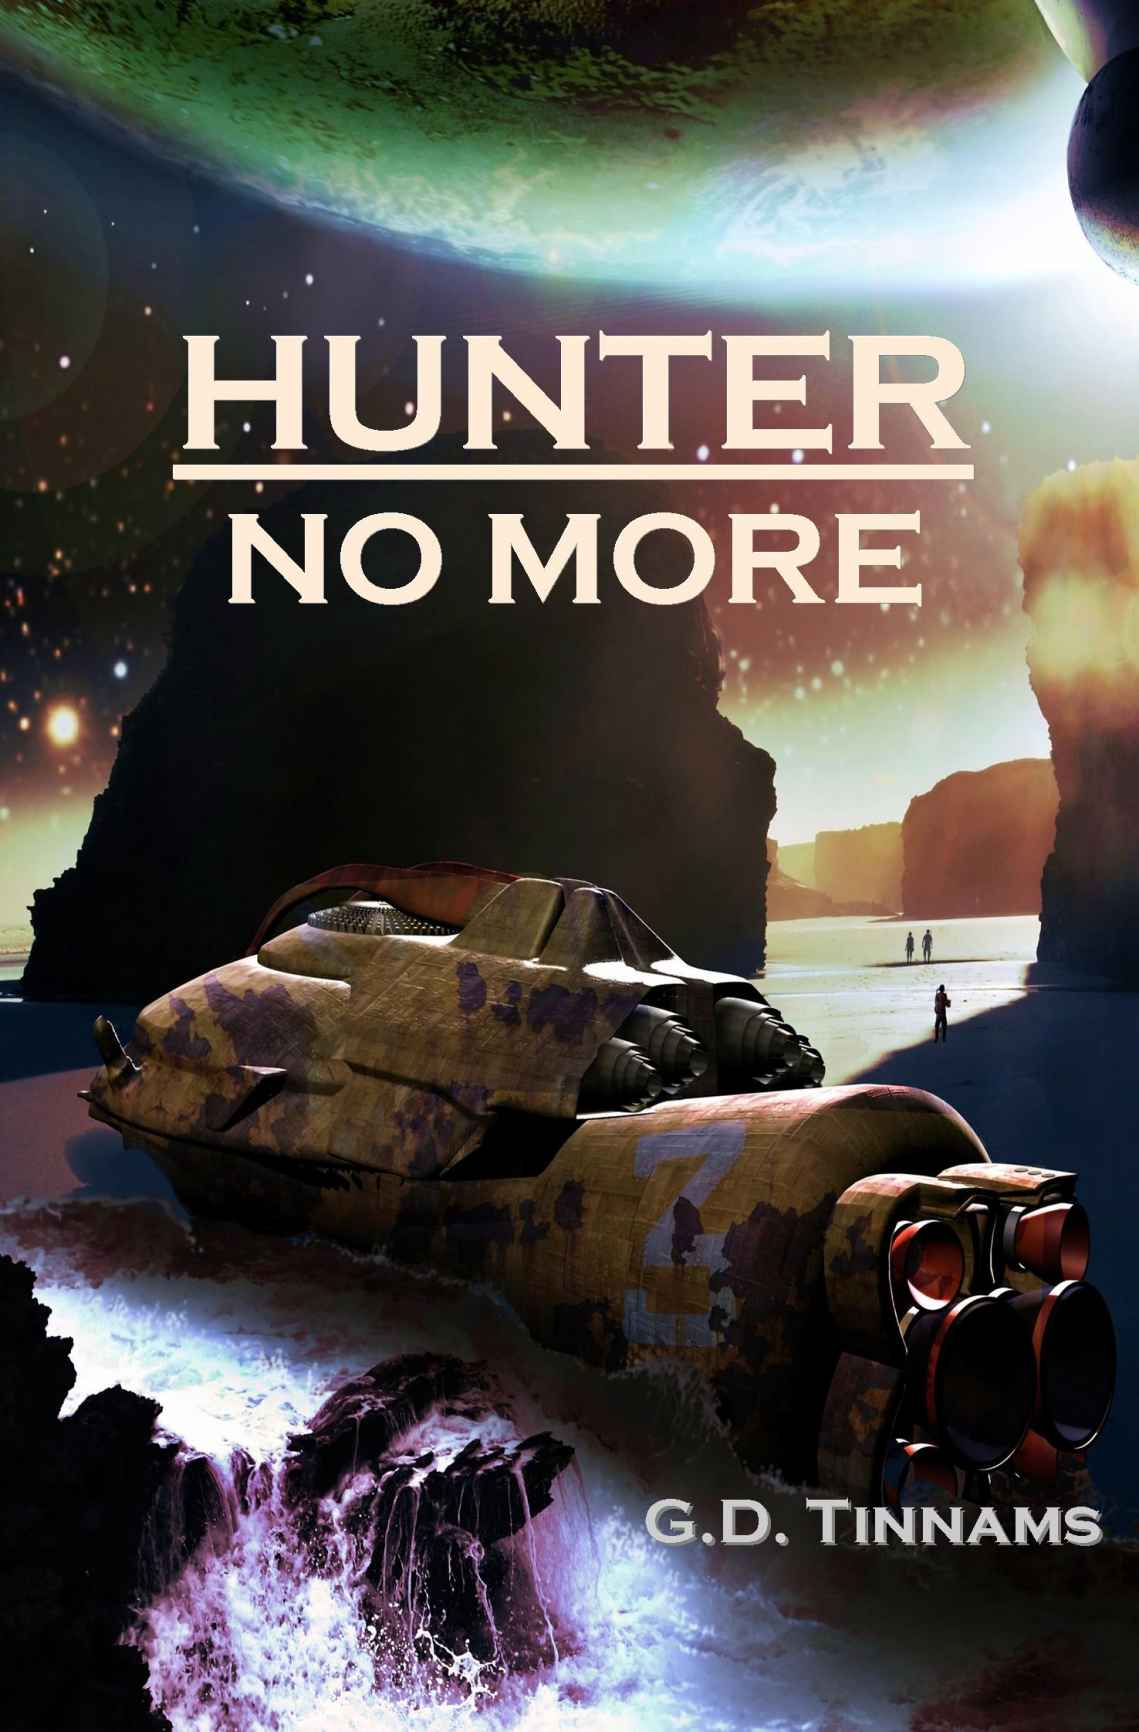 Hunter No More by G.D. Tinnams